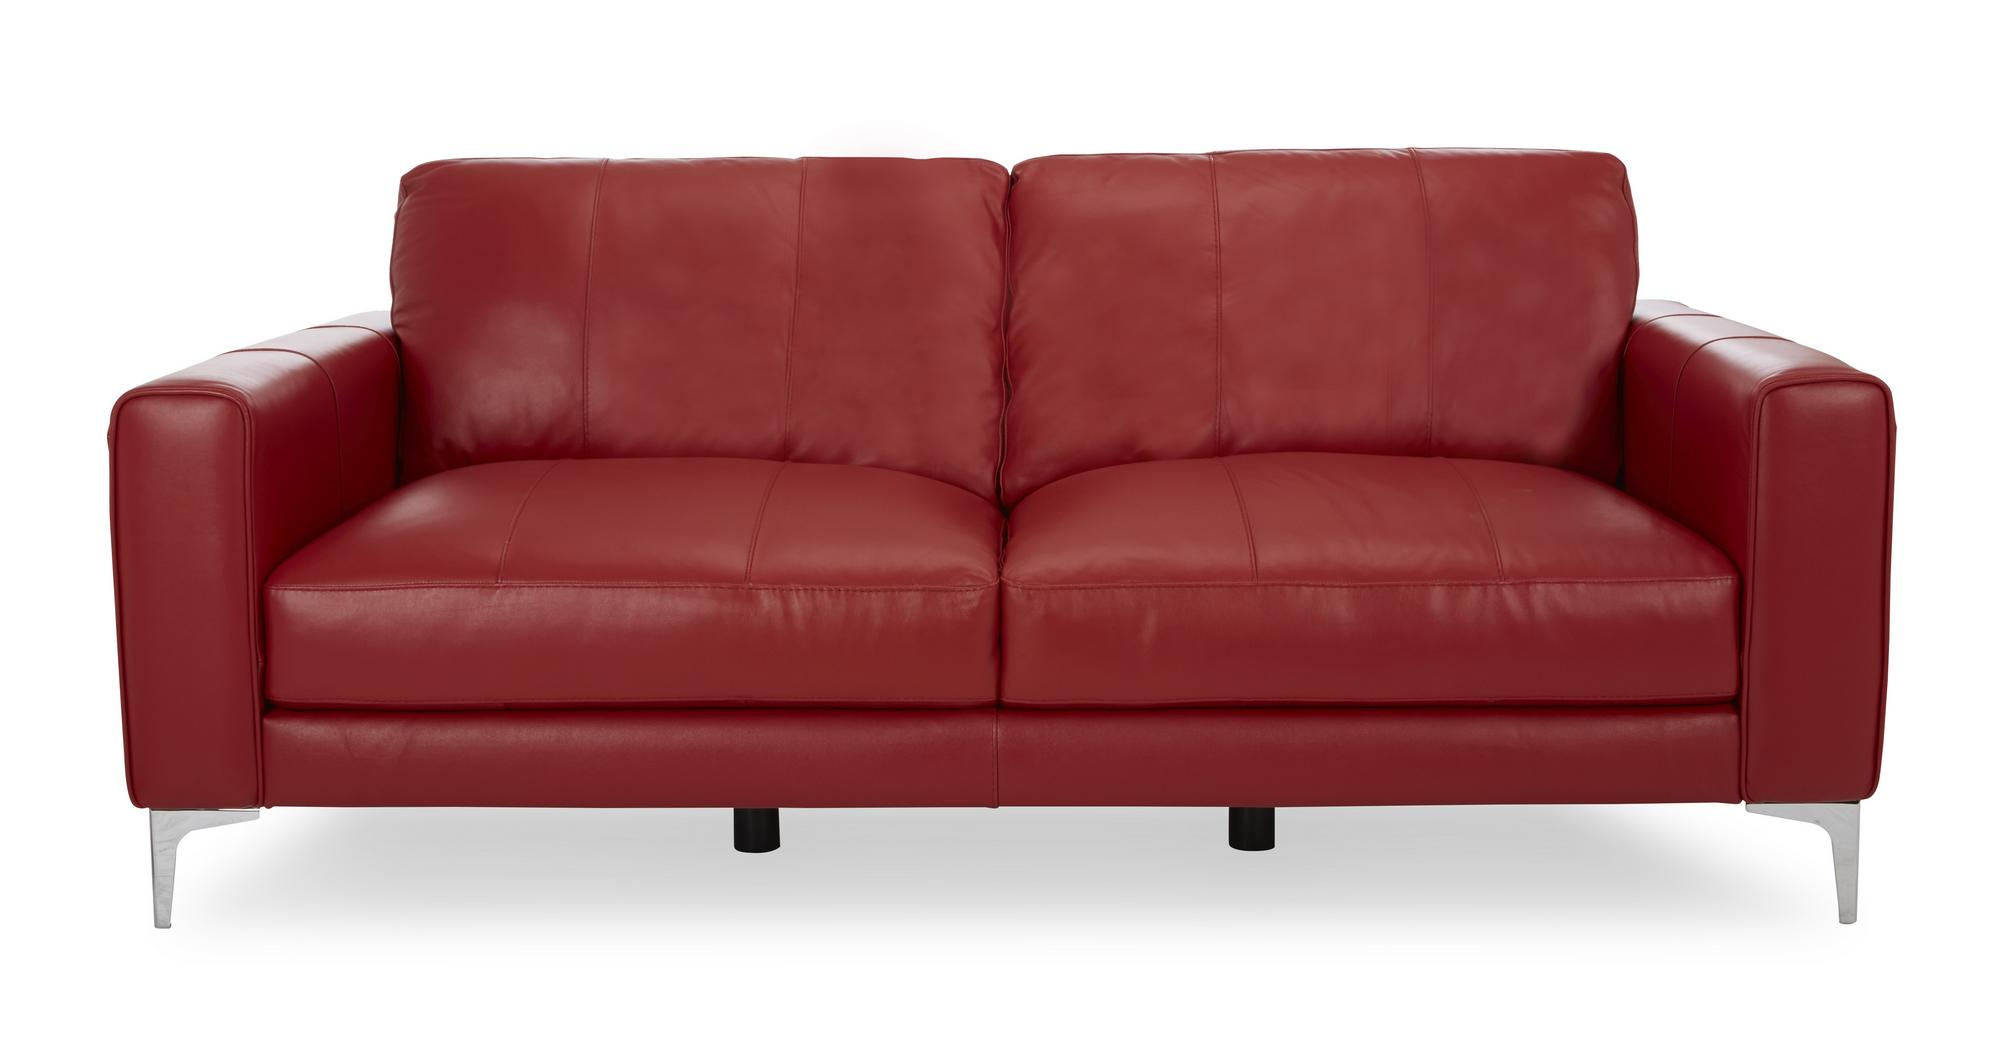 DFS Kenzie Red Leather 3 Seater Sofa 2 Seater Chair